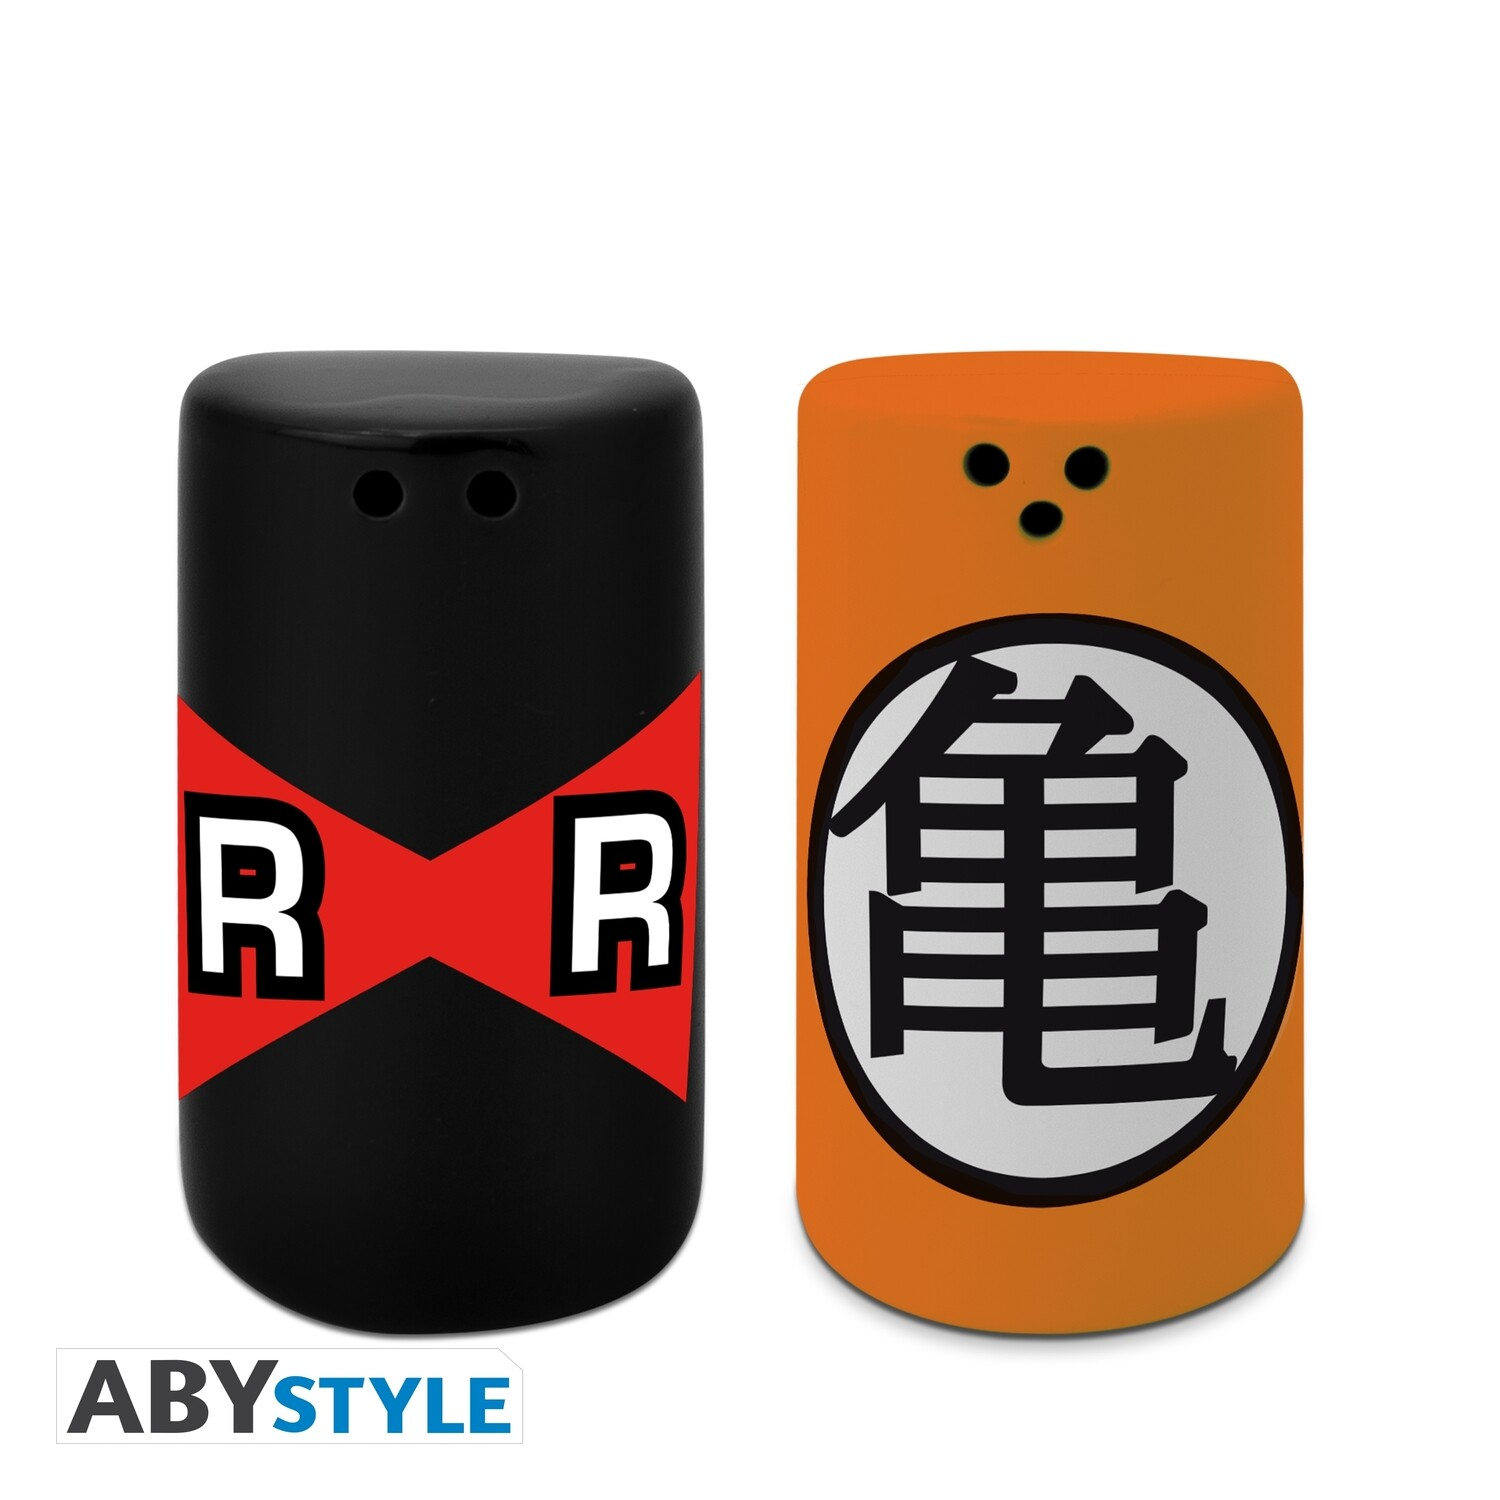 PRE-ORDER Abystyle DRAGON BALL - Salt & Pepper Shakers - Kame & RR